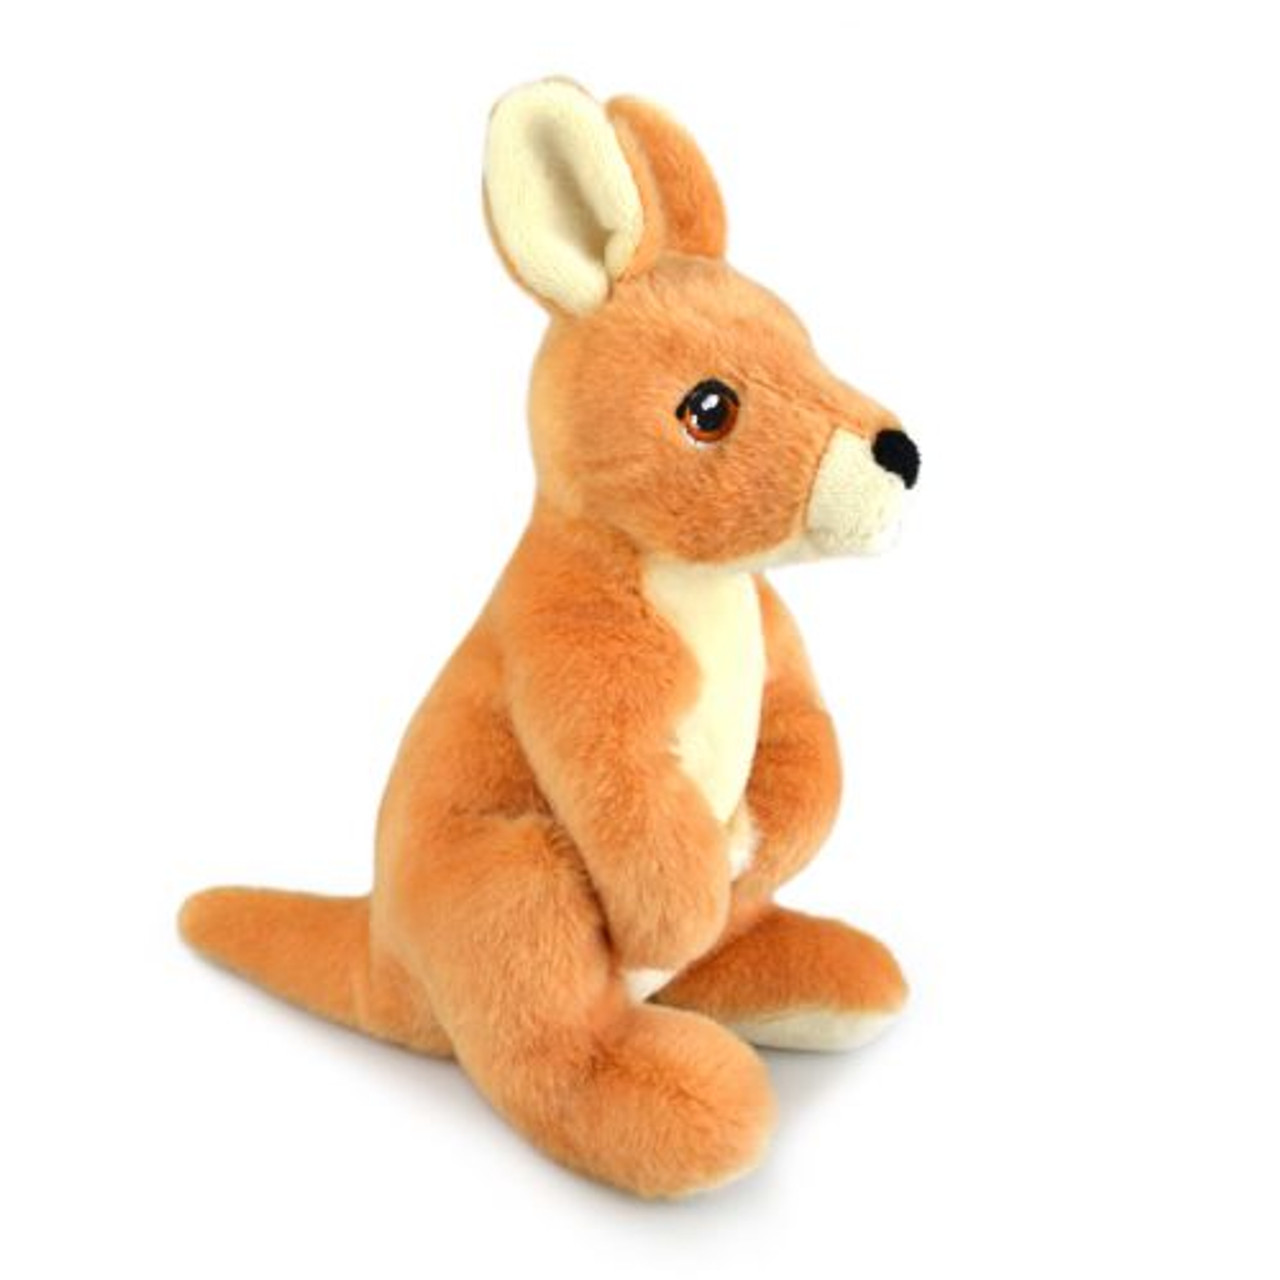 Korimco Kangaroo Keeleco at Baby Barn Discounts The loveable plush kangaroo that's 100% recycled, 100% huggable and made from responsible resources. The perfect companion for Aussie kids.